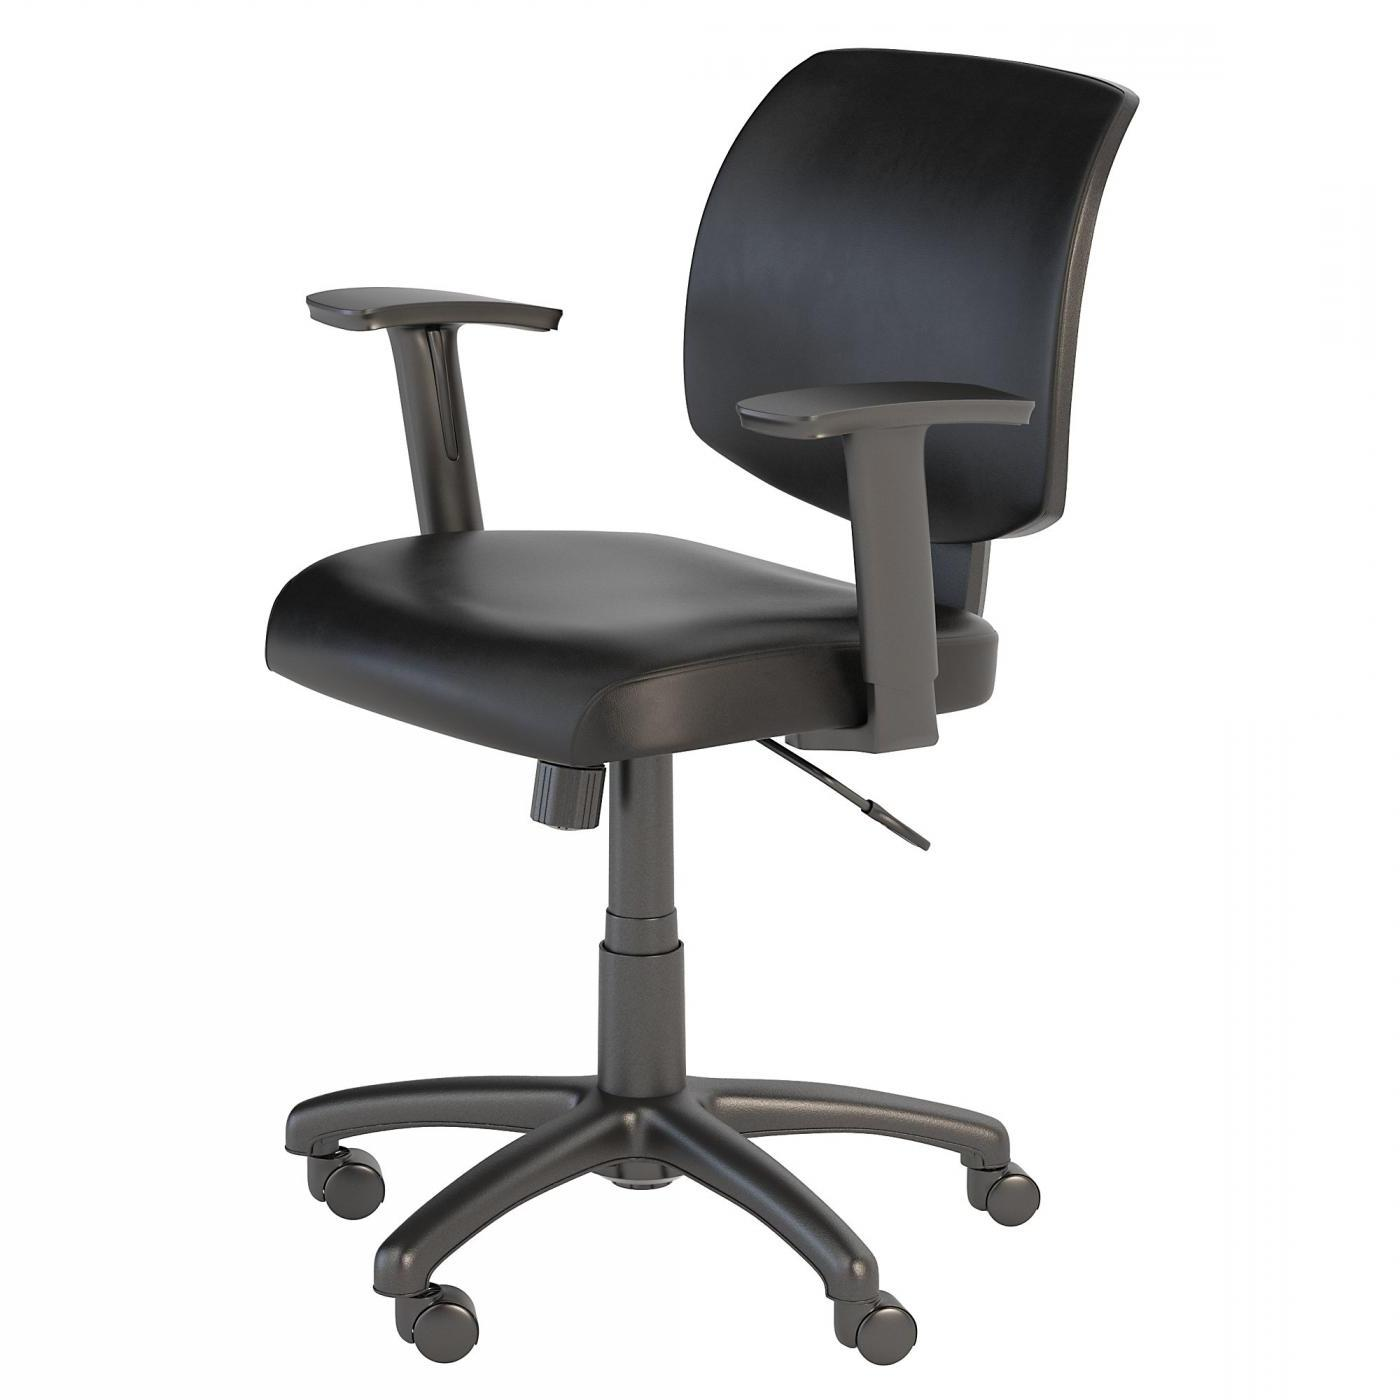 <font color=#c60><b>BUSH BUSINESS FURNITURE PETITE LEATHER OFFICE CHAIR. FREE SHIPPING</font></b> </font></b>